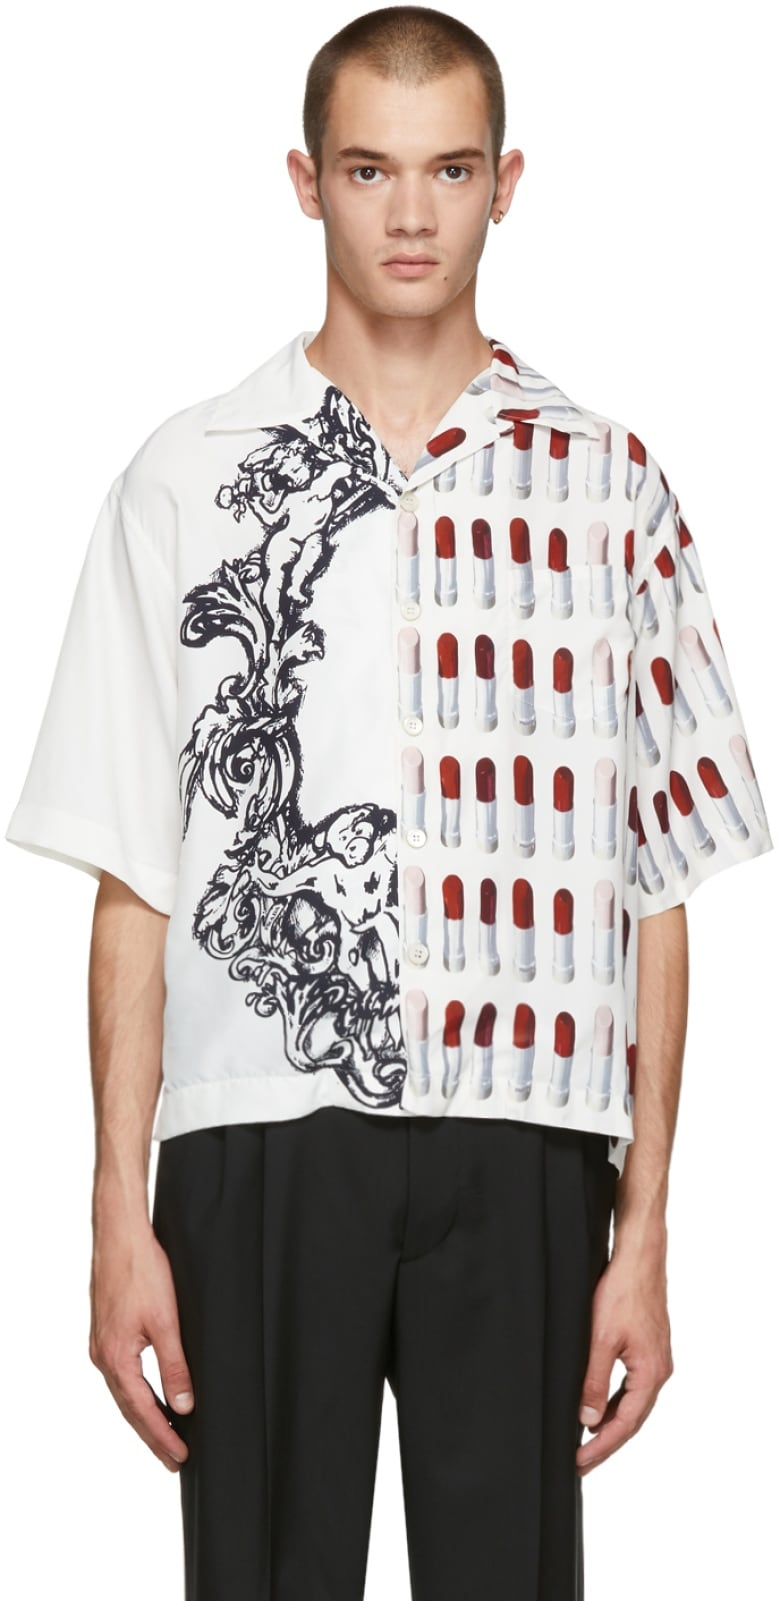 75049c9a6 If you want to know what the most popular graphic print shirt is among  celebrities this season, it's gotta be this eccentrically Prada shirt.